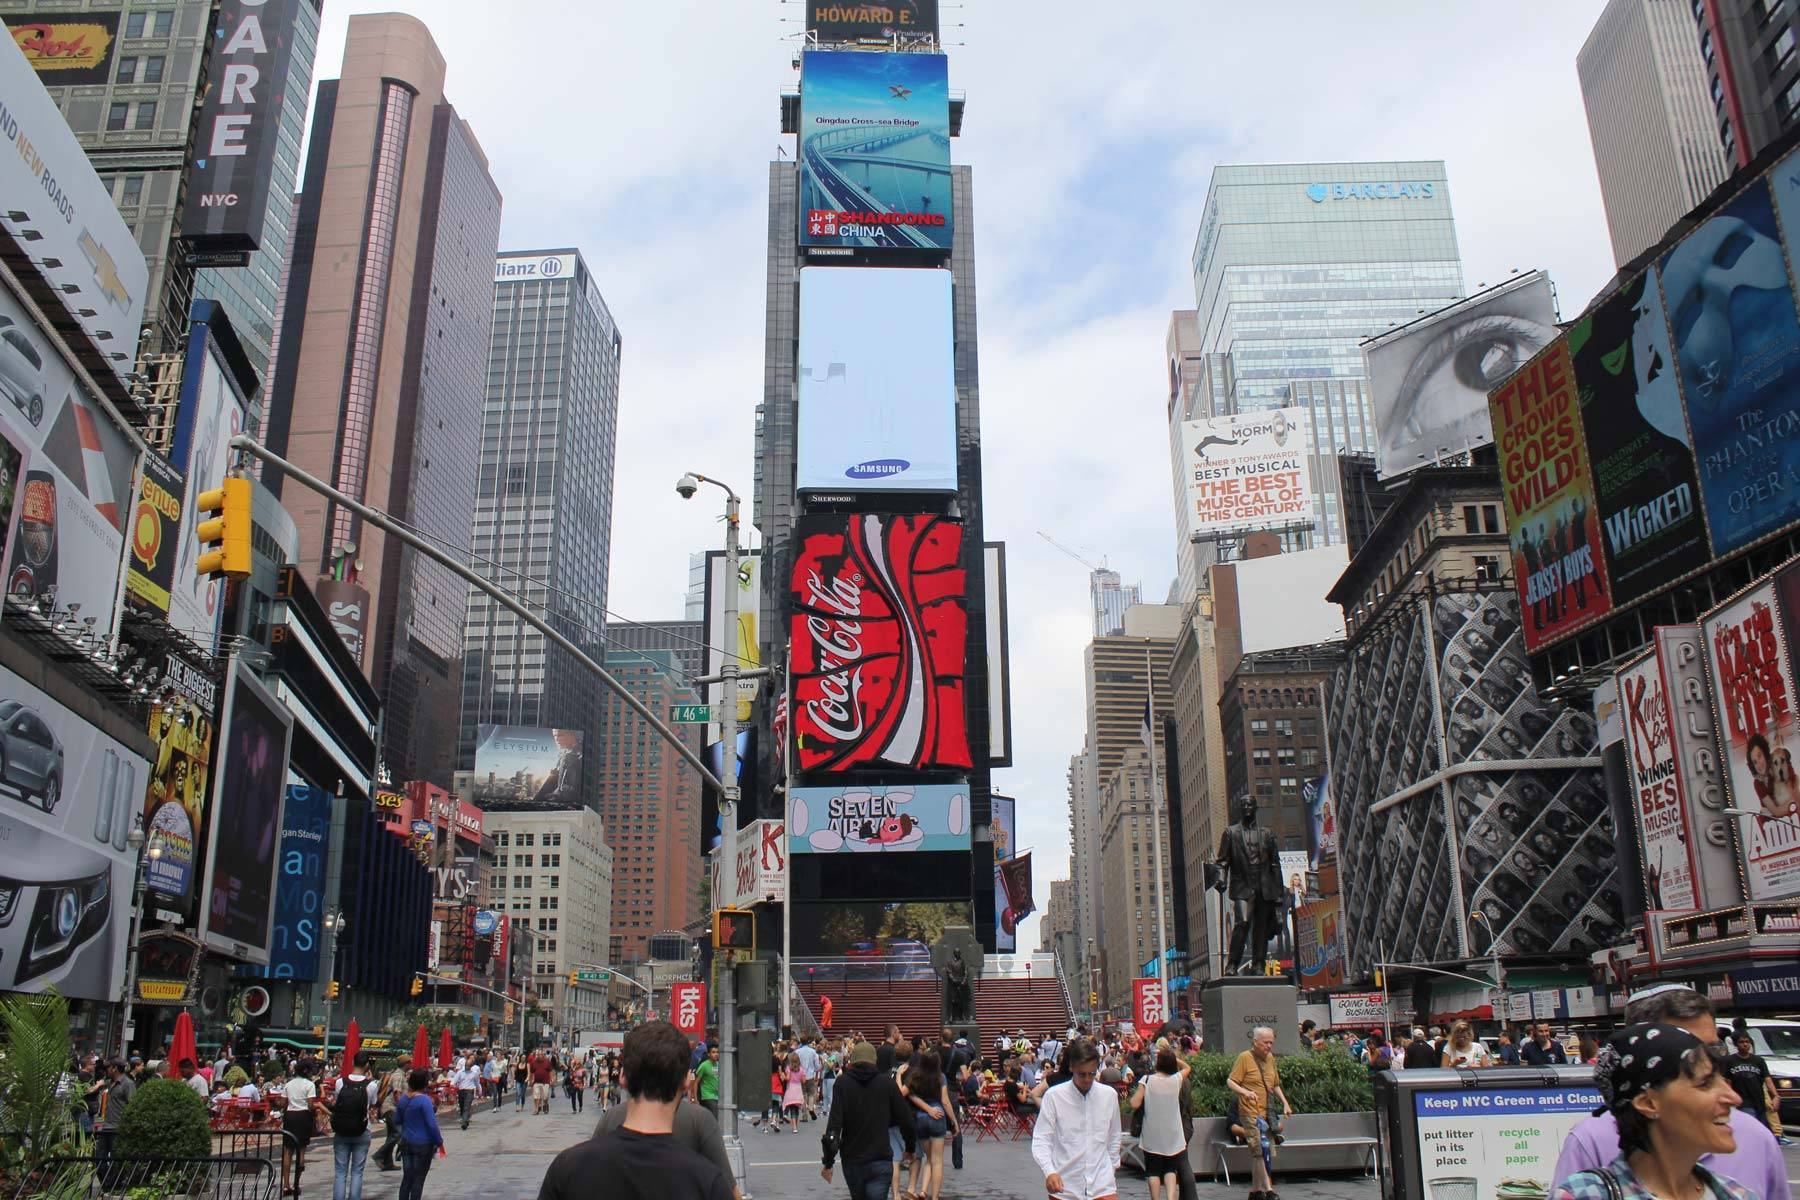 Times Square looking far brighter and livlier